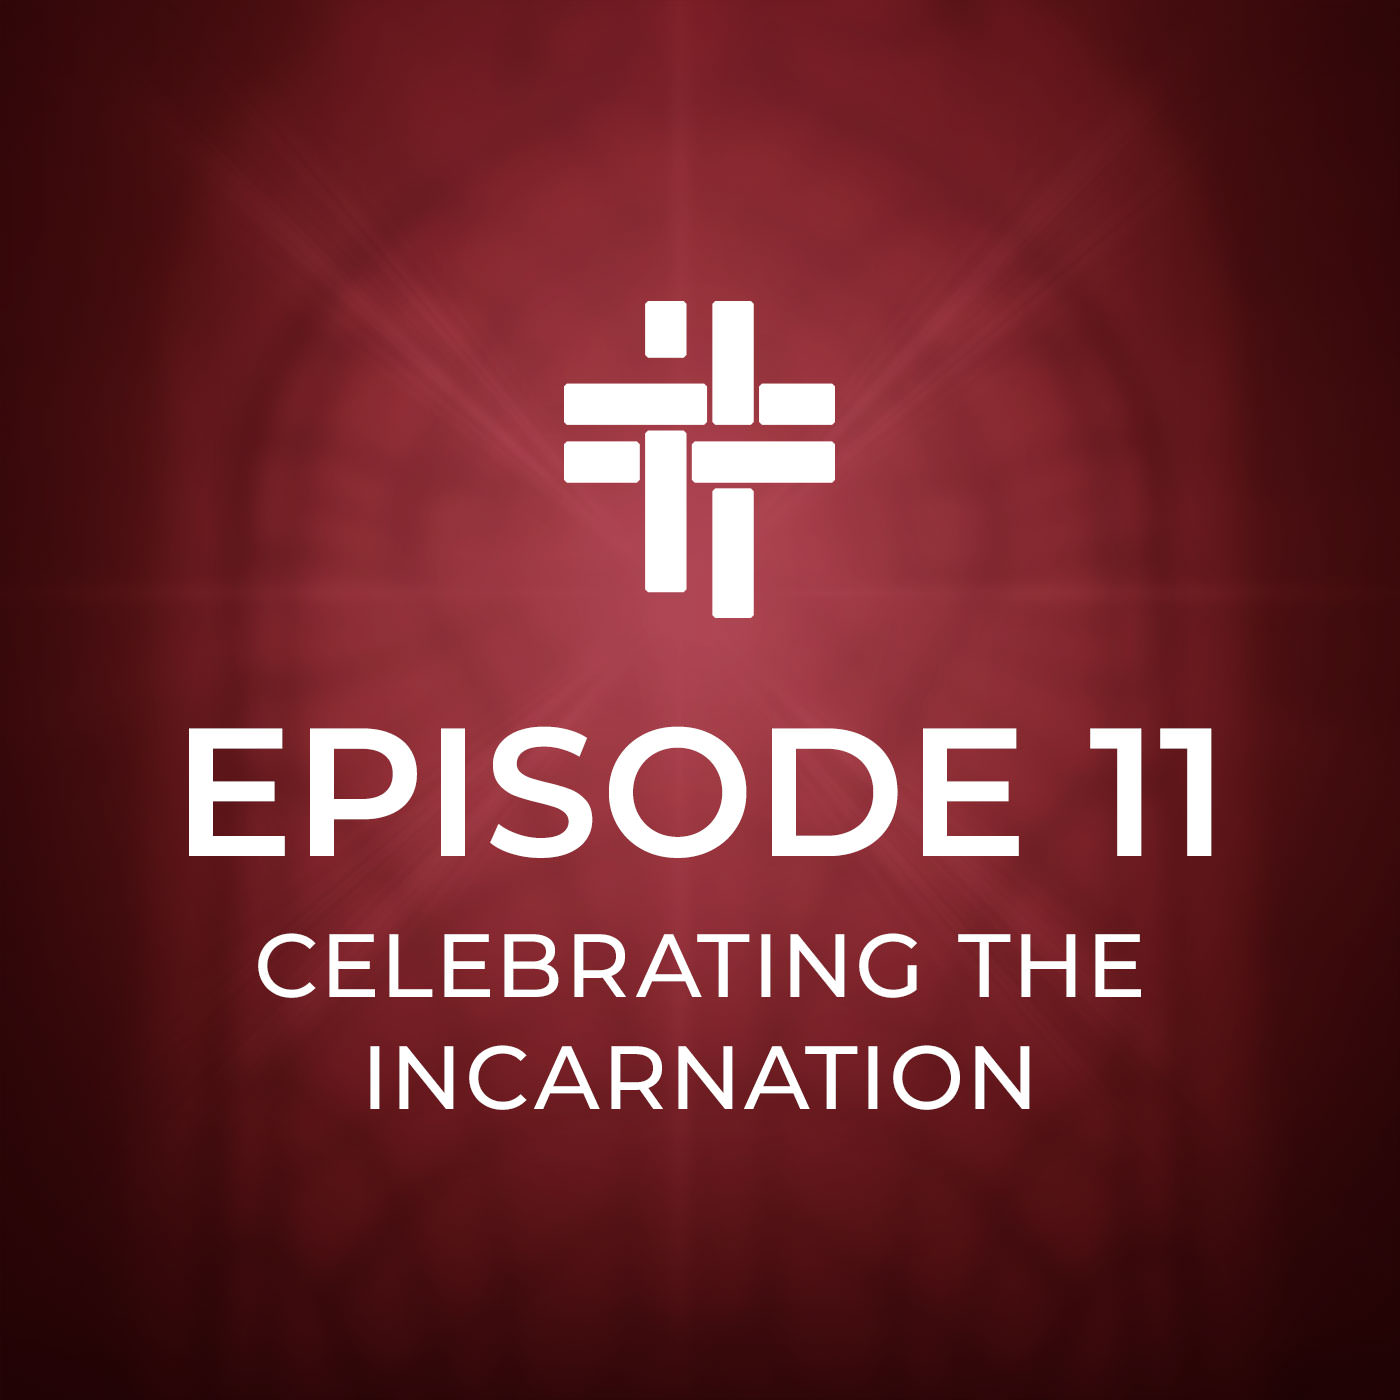 With You Podcast Episode 11 Celebrating the Incarnation